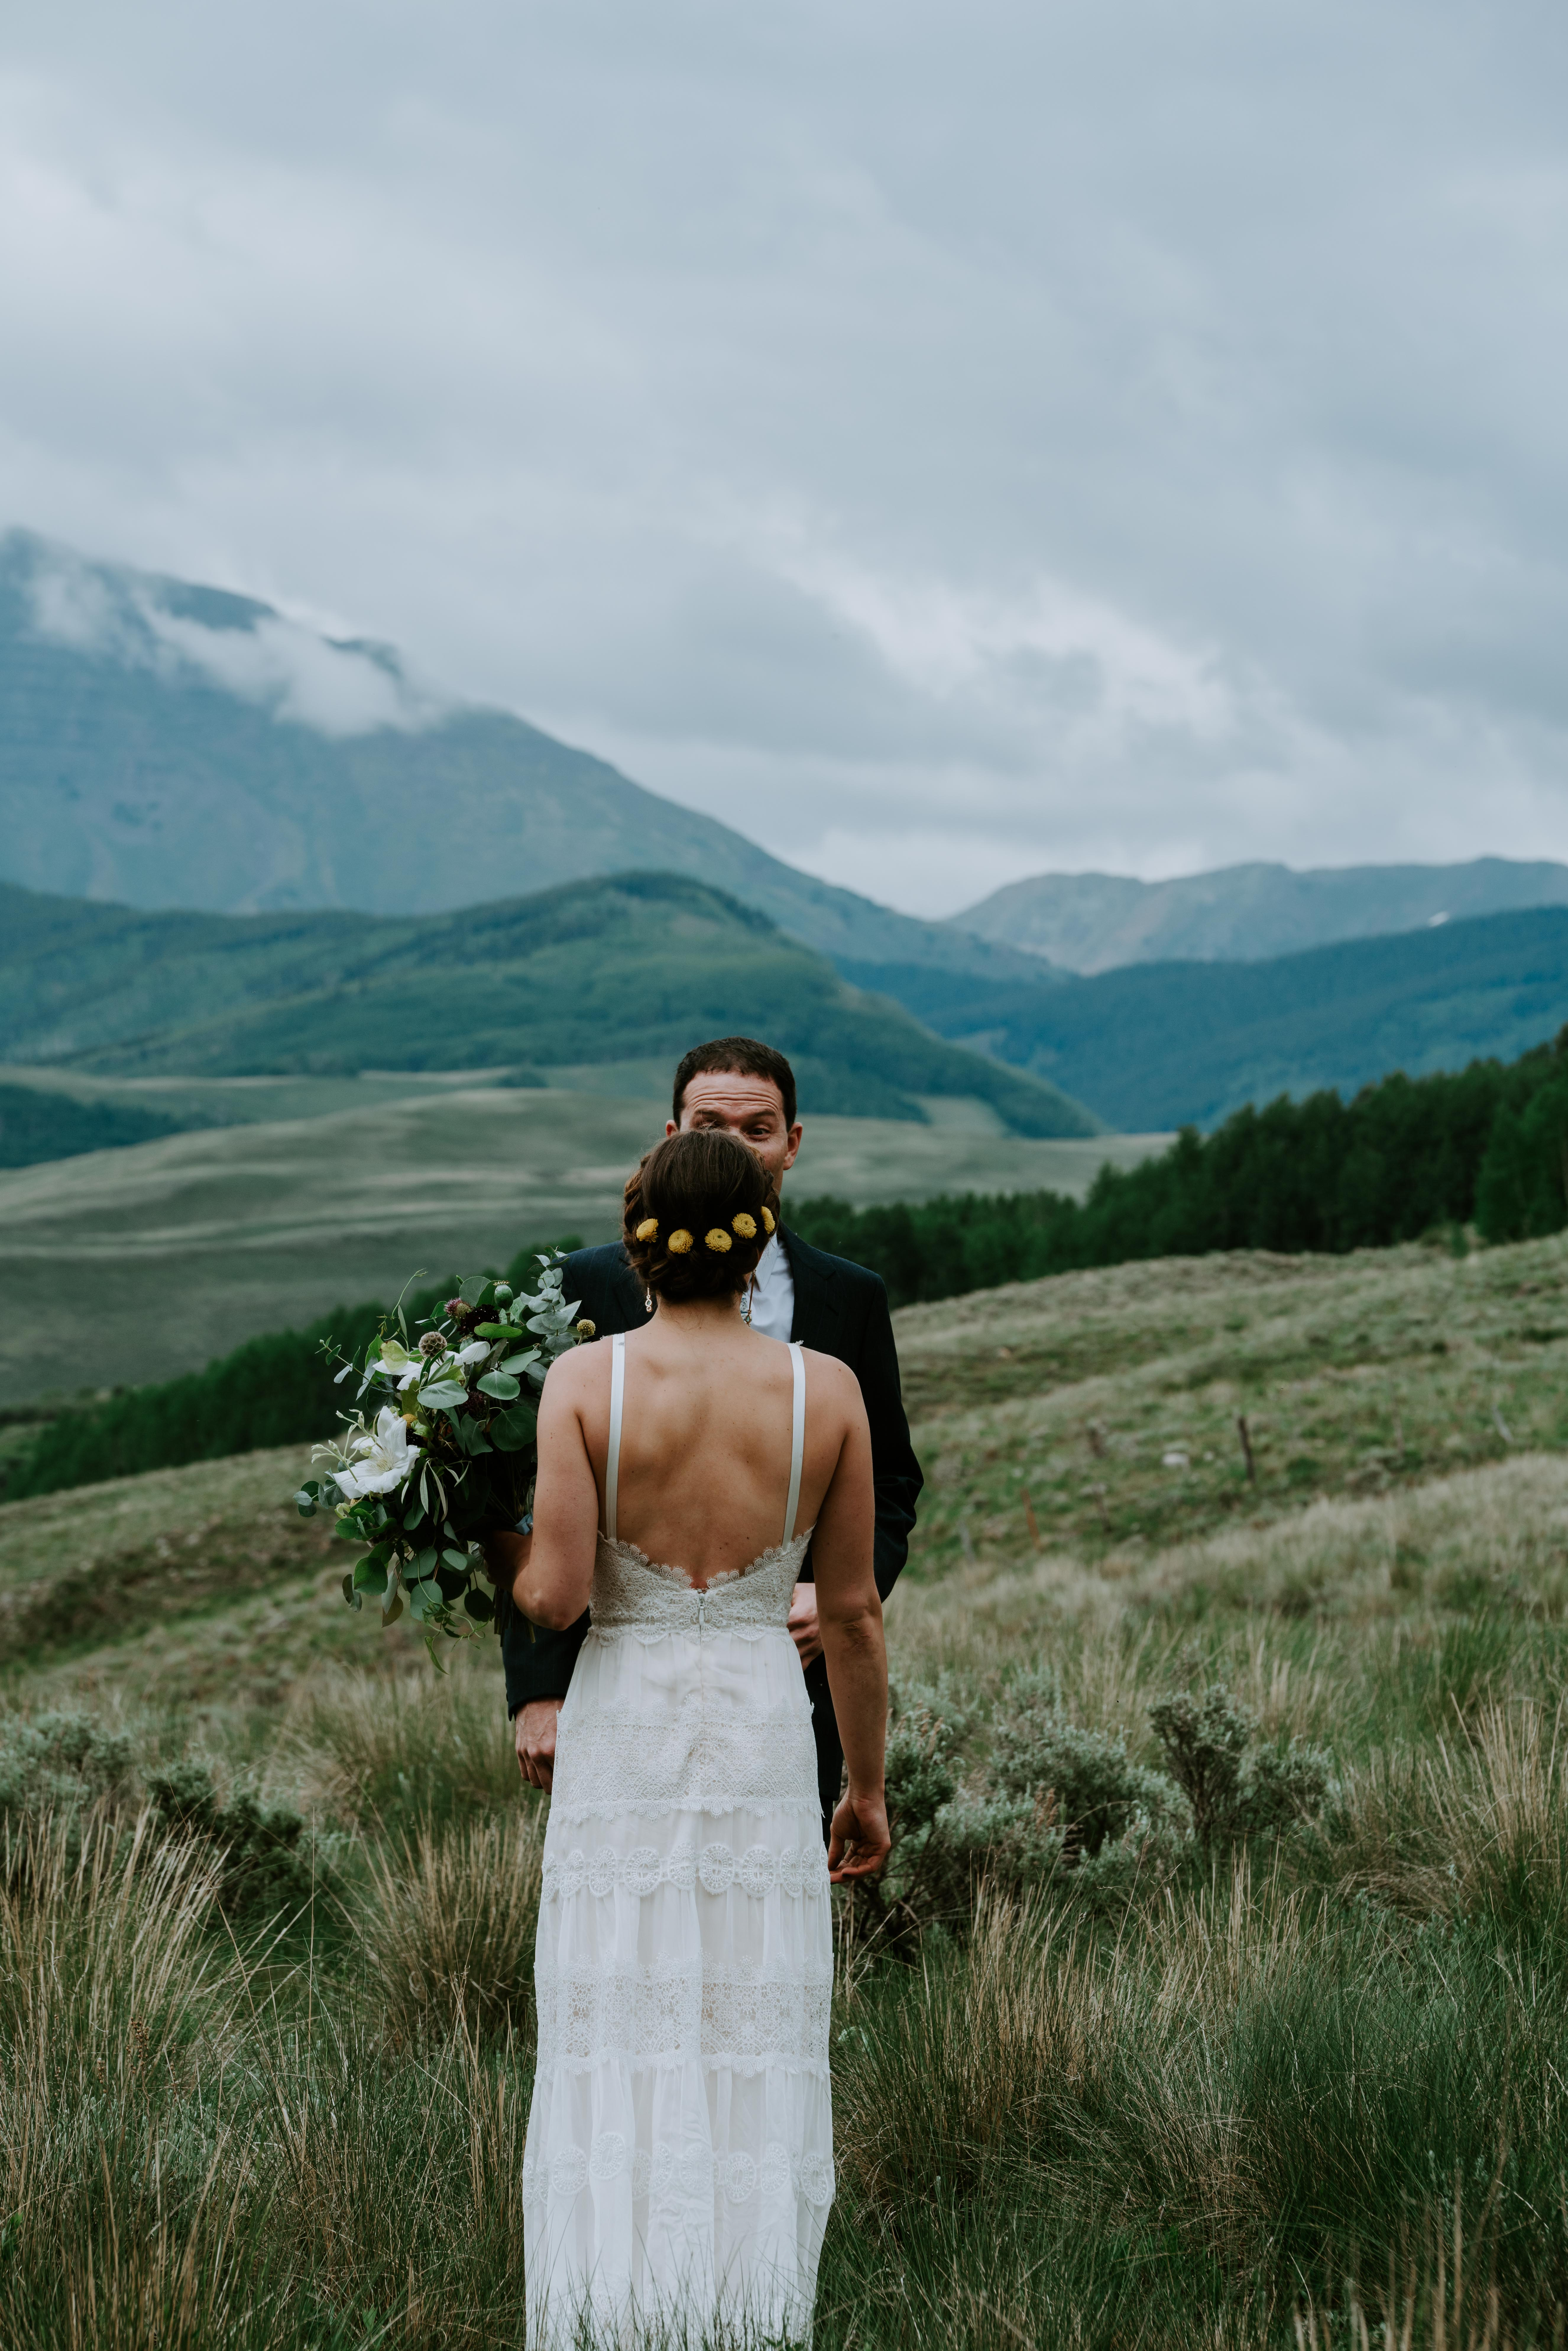 Laura_Alexe_Wedding_Crested_Butte_MegONeillPhotography__180616_31